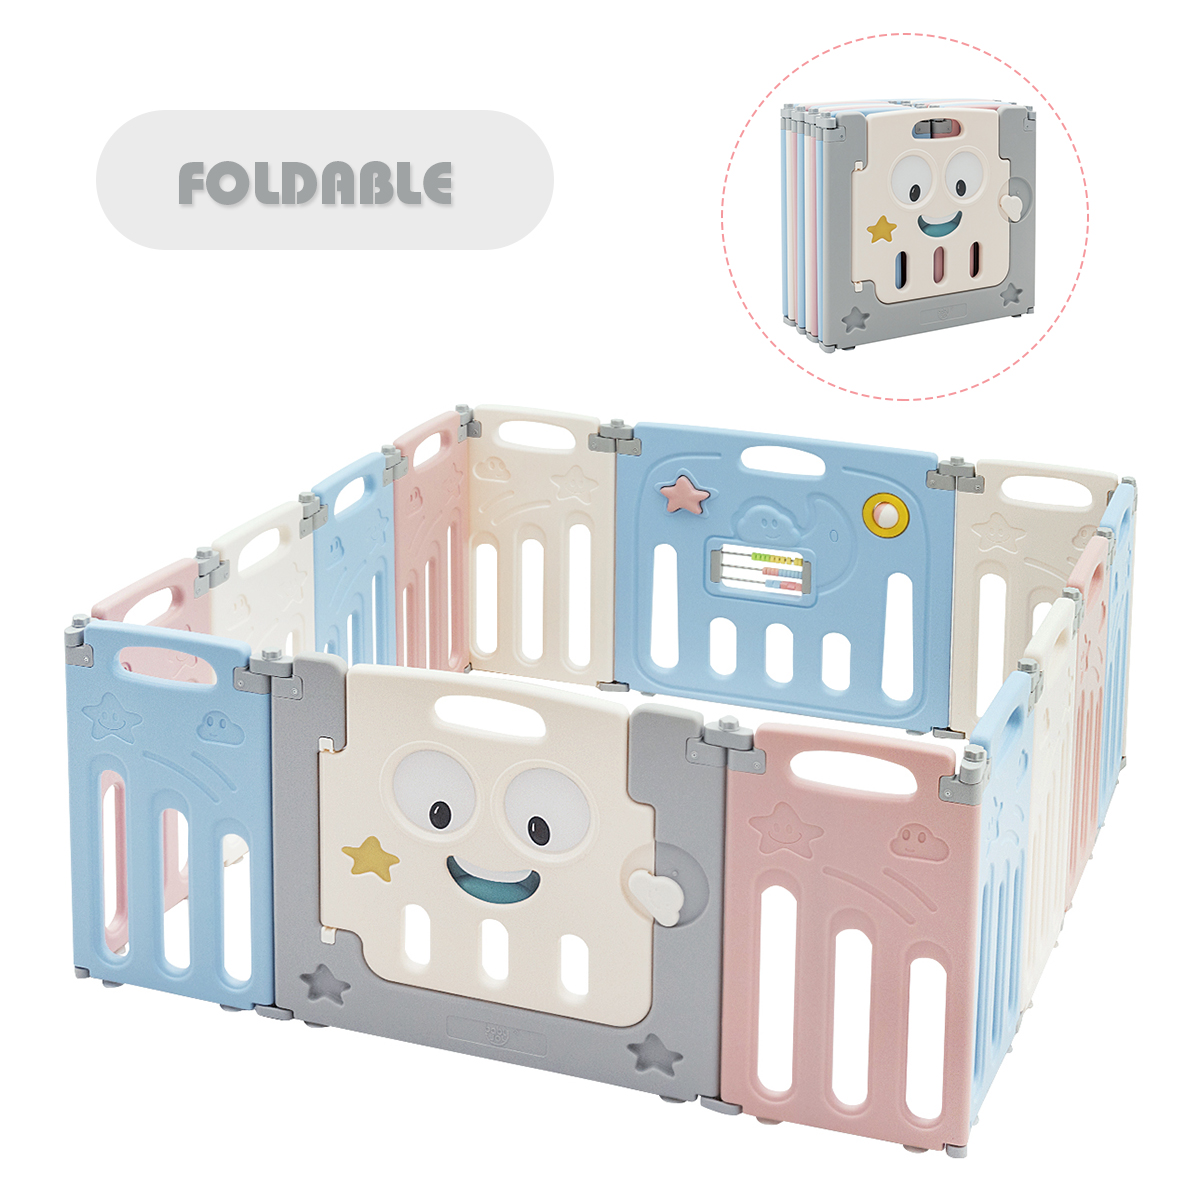 14-Panel Foldable Baby Playpen Child Activity Centre w/ Lock Door & Rubber Mats